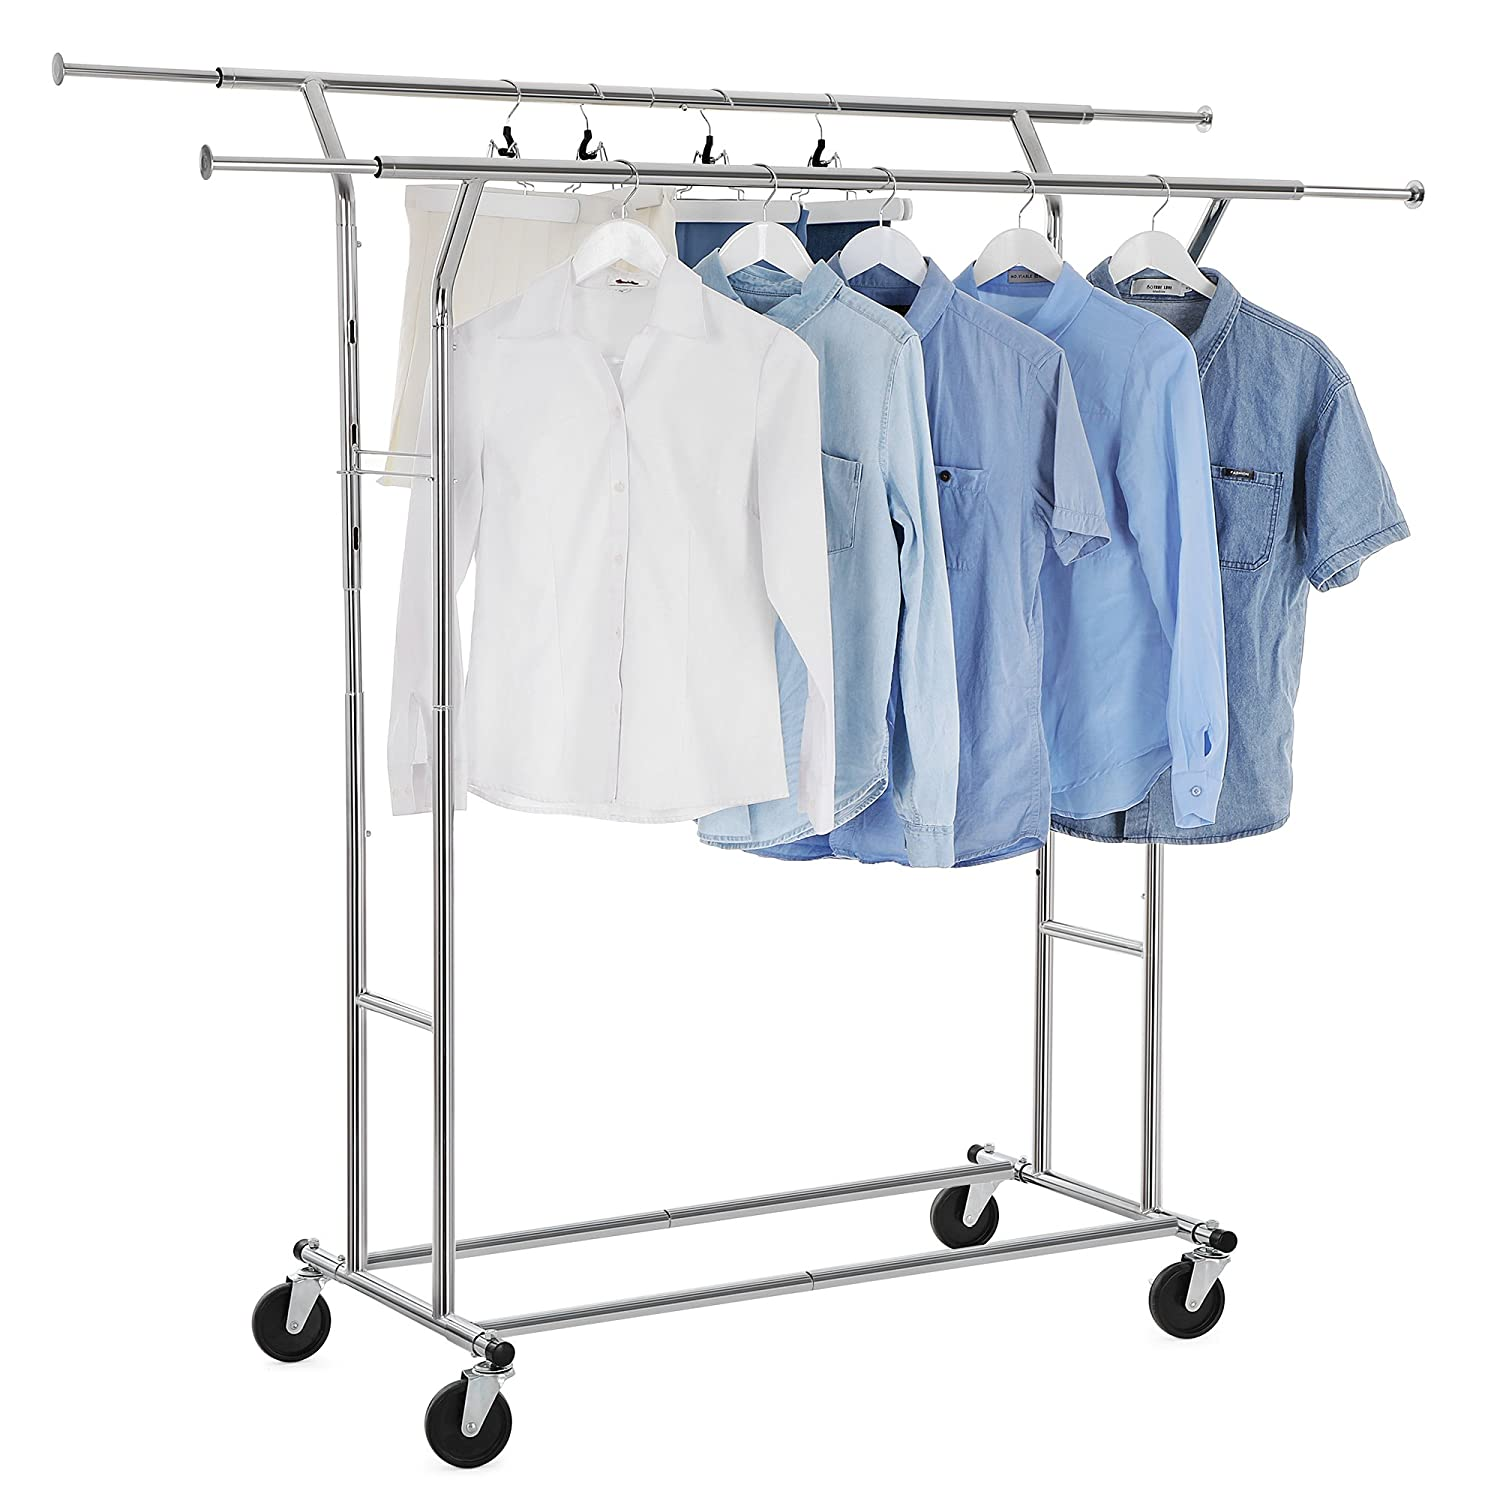 Songmics songmics double rail clothes racks commercial grade height adjustable heavy duty